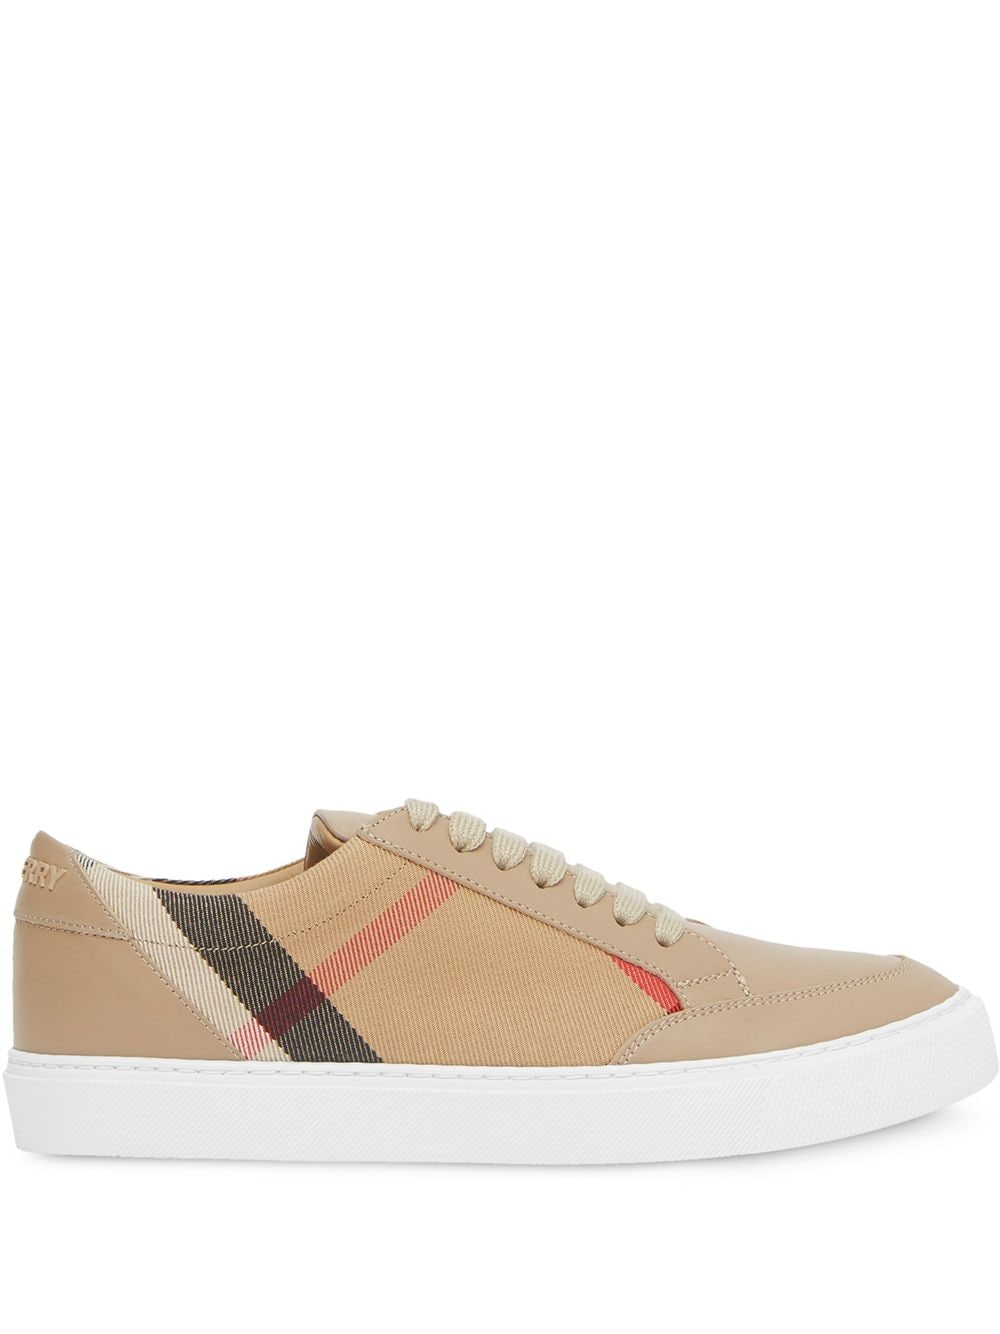 Salmond Leather Sneakers